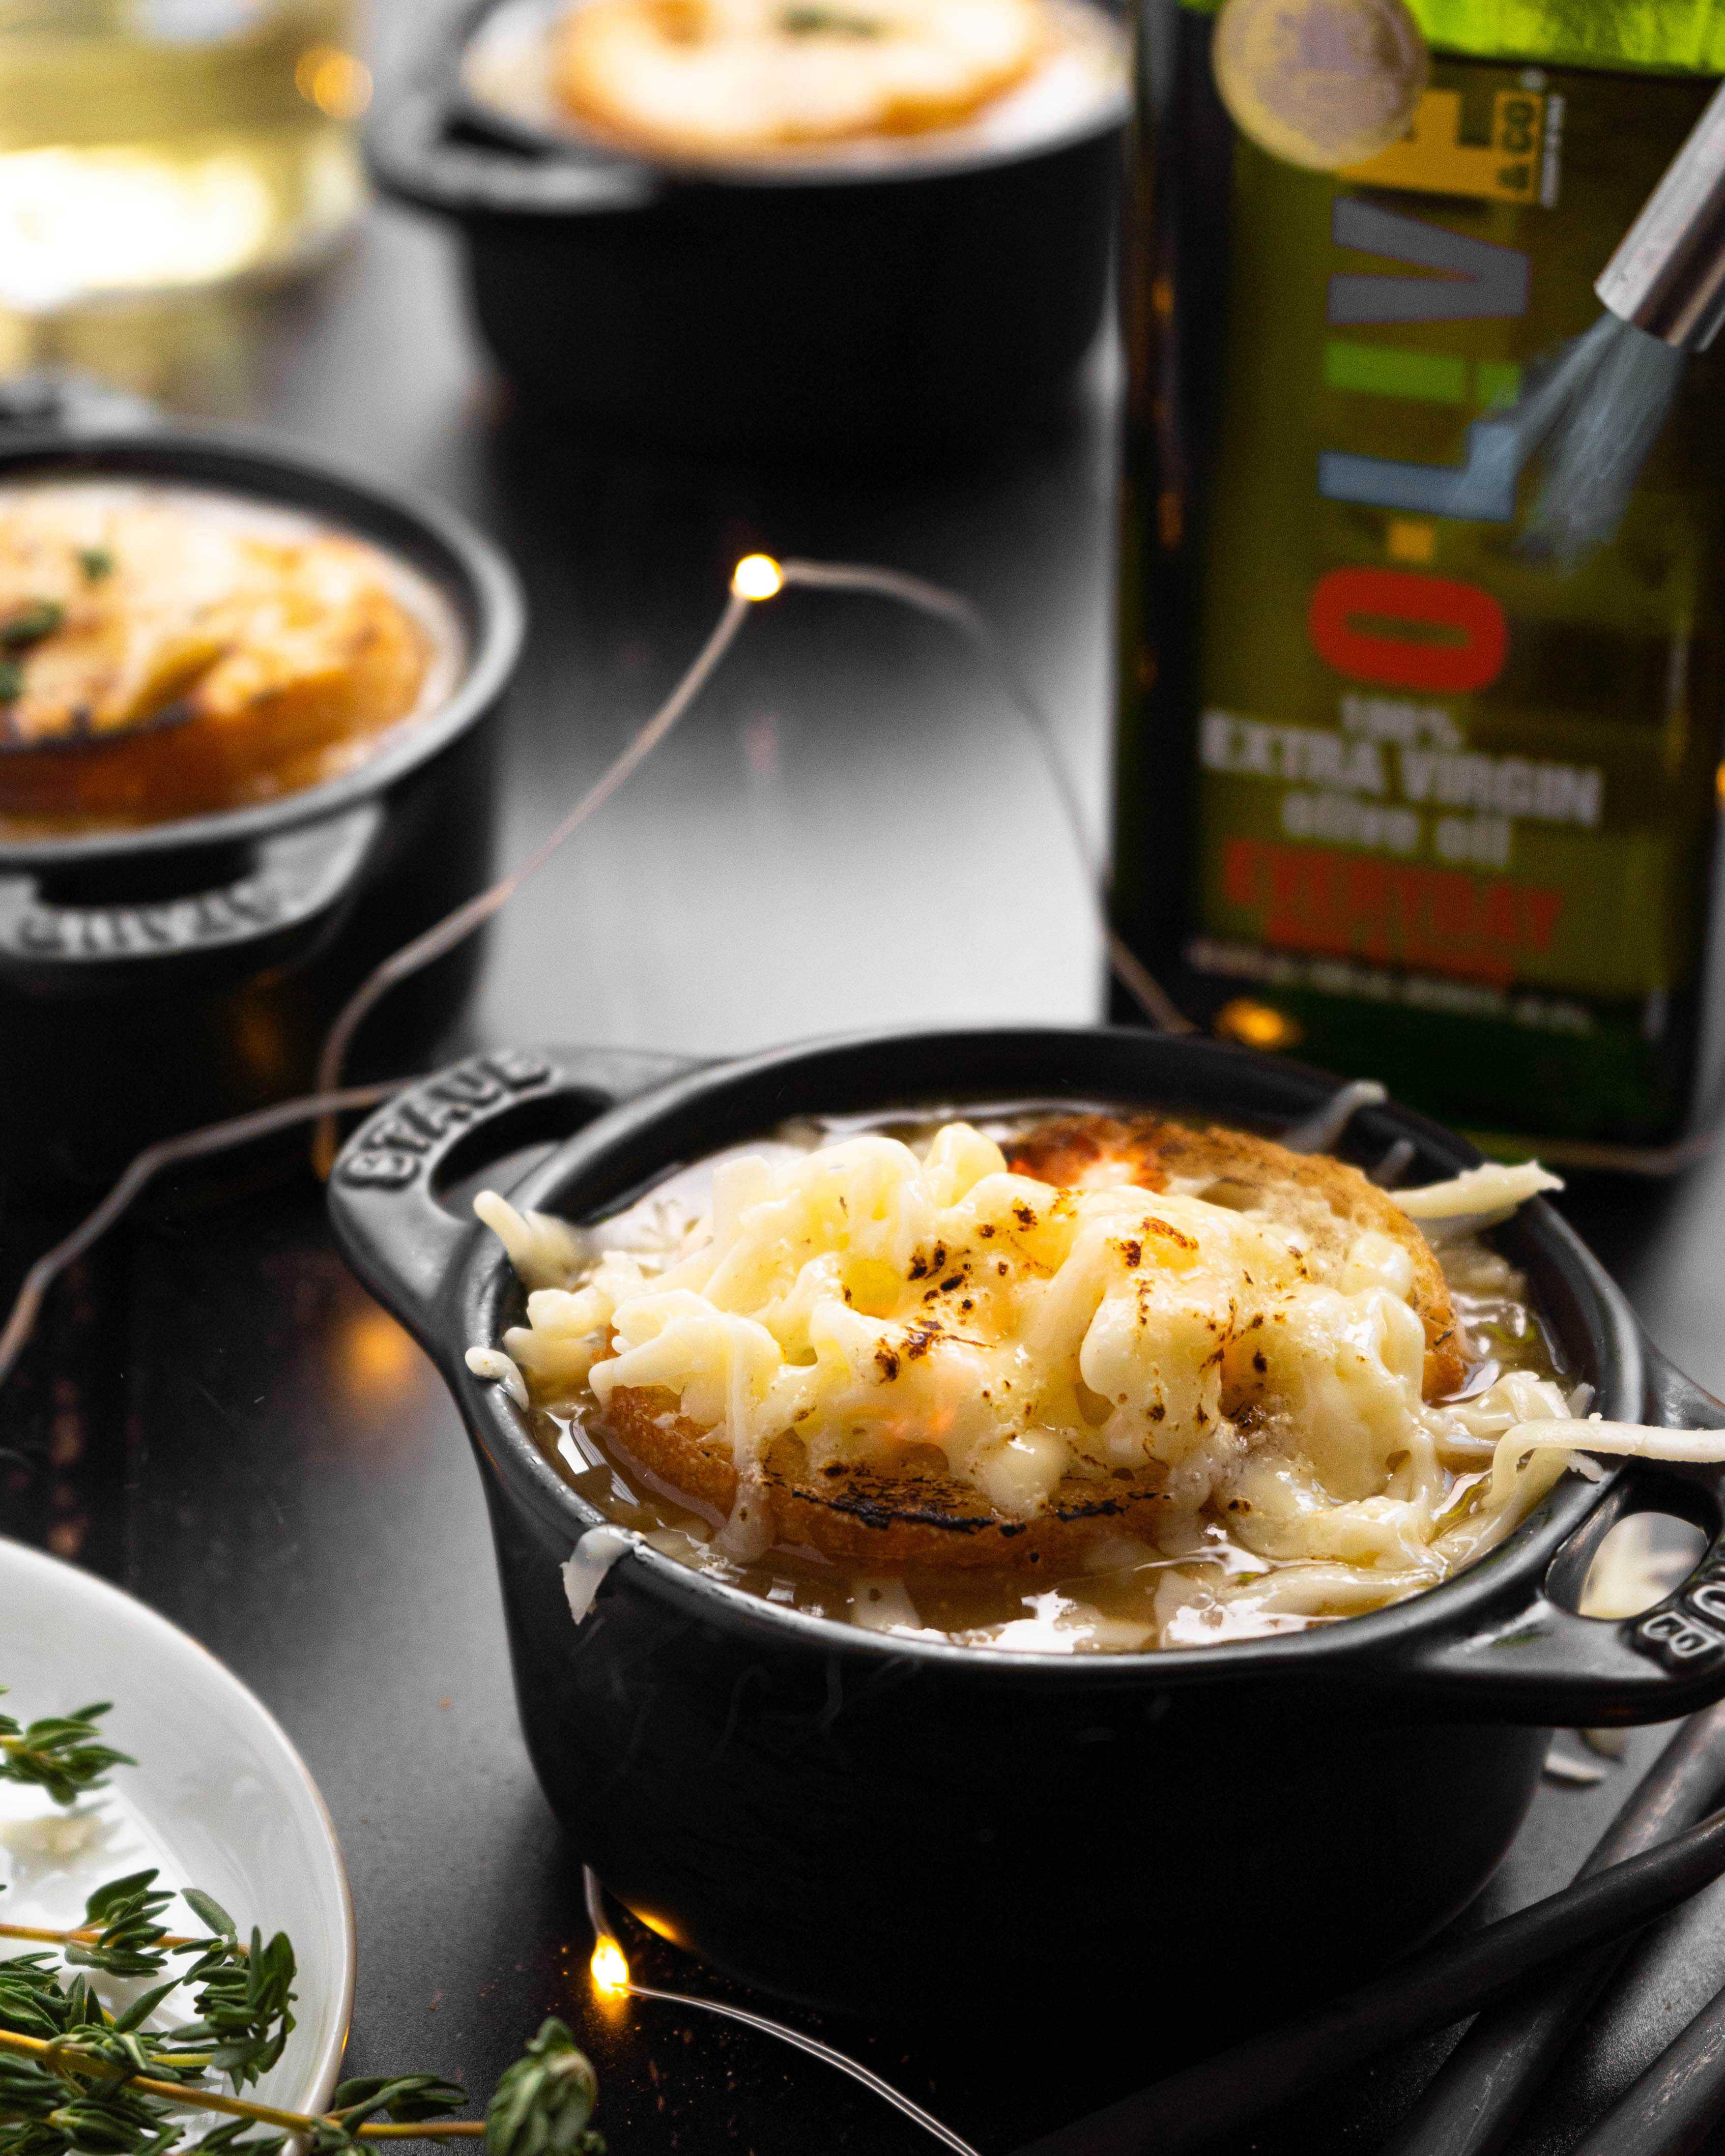 A torch melting cheese over a bowl of French Onion Soup